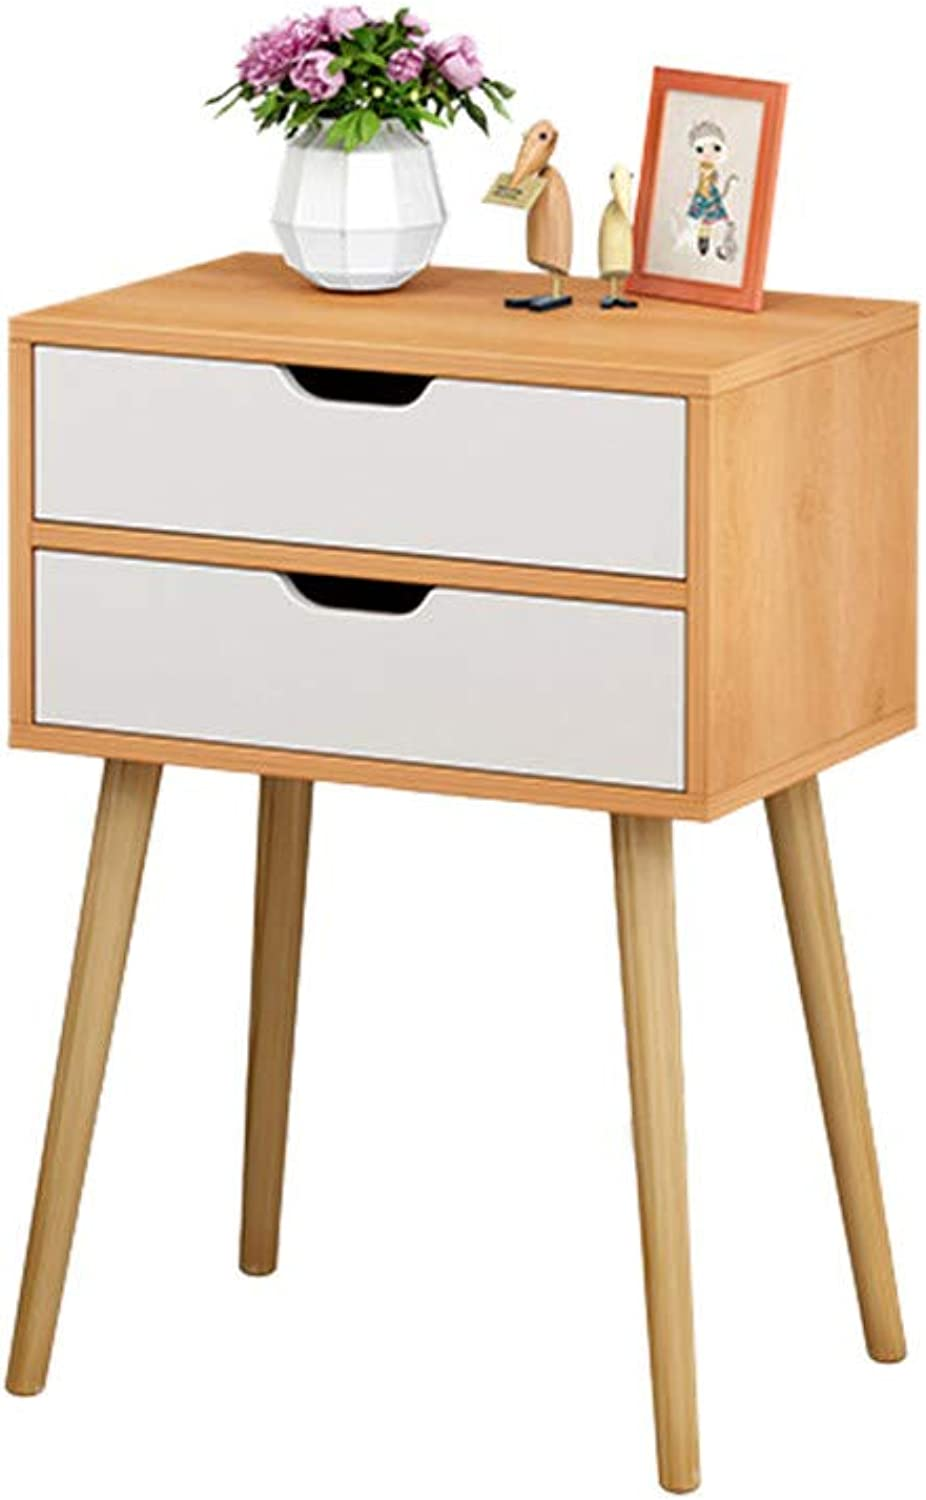 Modern Nightstand, Stackable End Table, Assemble Cabinet for Storage, Side Table for Small Spaces, Bedroom Wood Double Drawer Bedside Locker (Nordic Pine color)